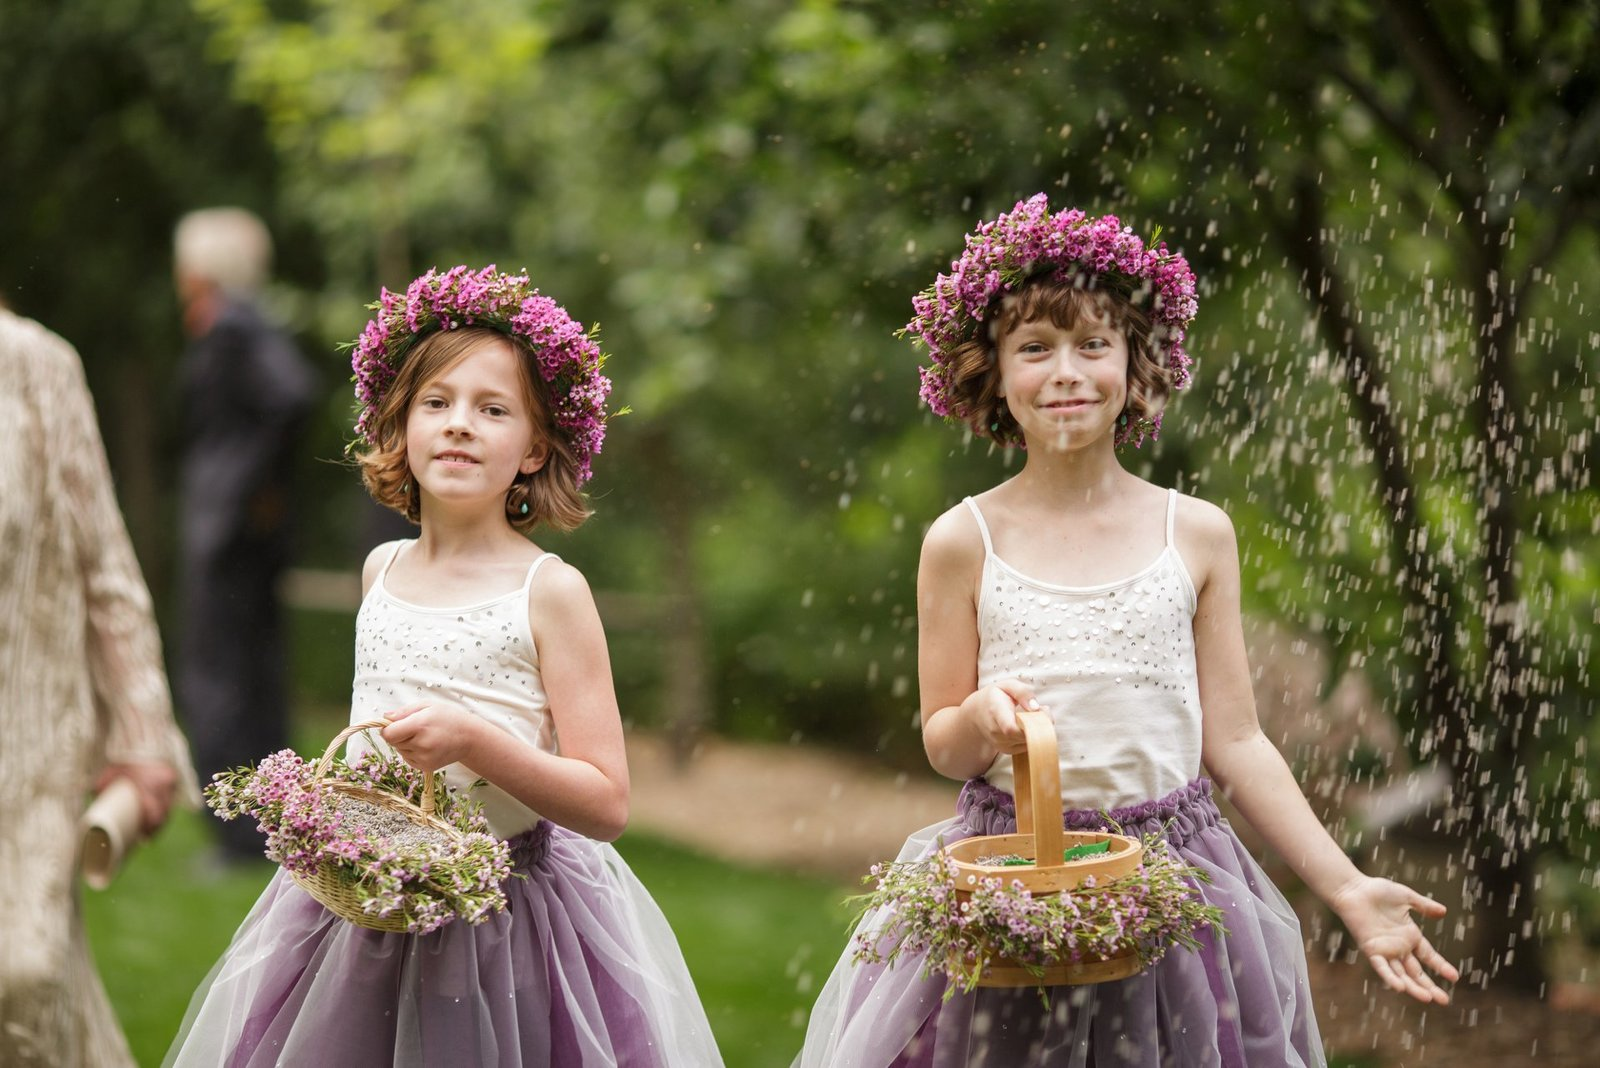 flower-girls-with-lavendar-flowers